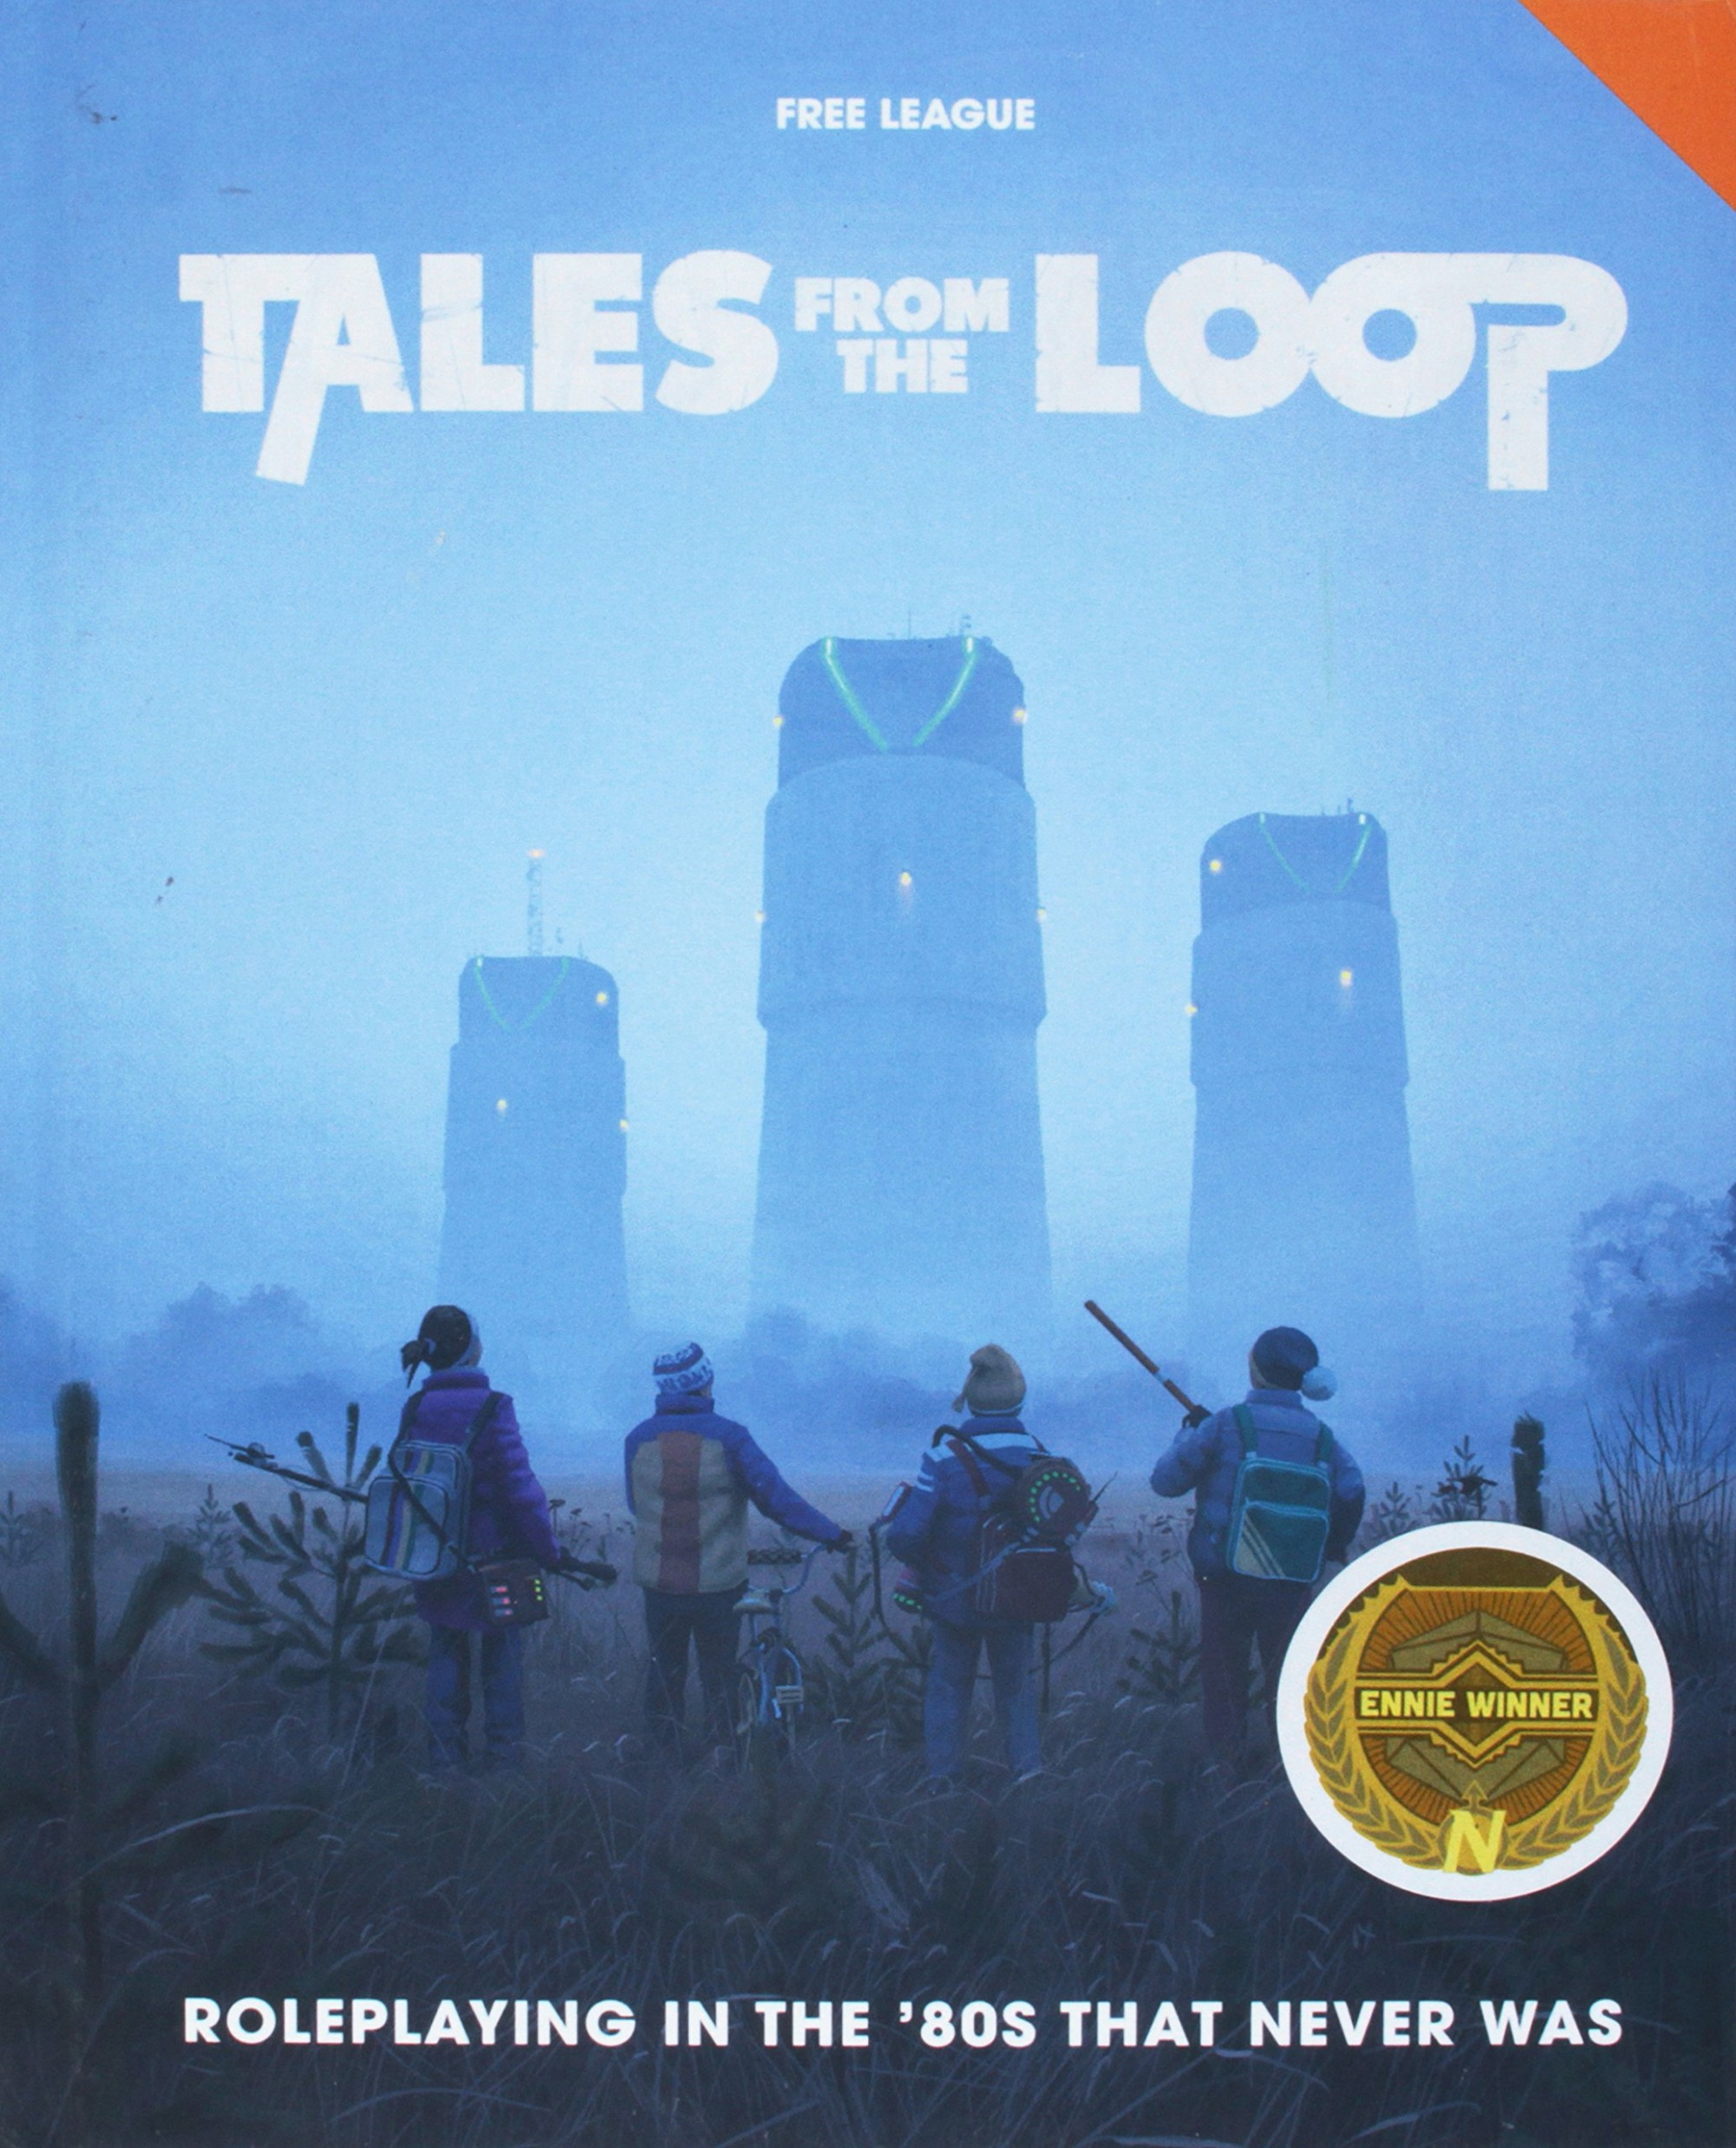 Tales from the Loop roleplaying game